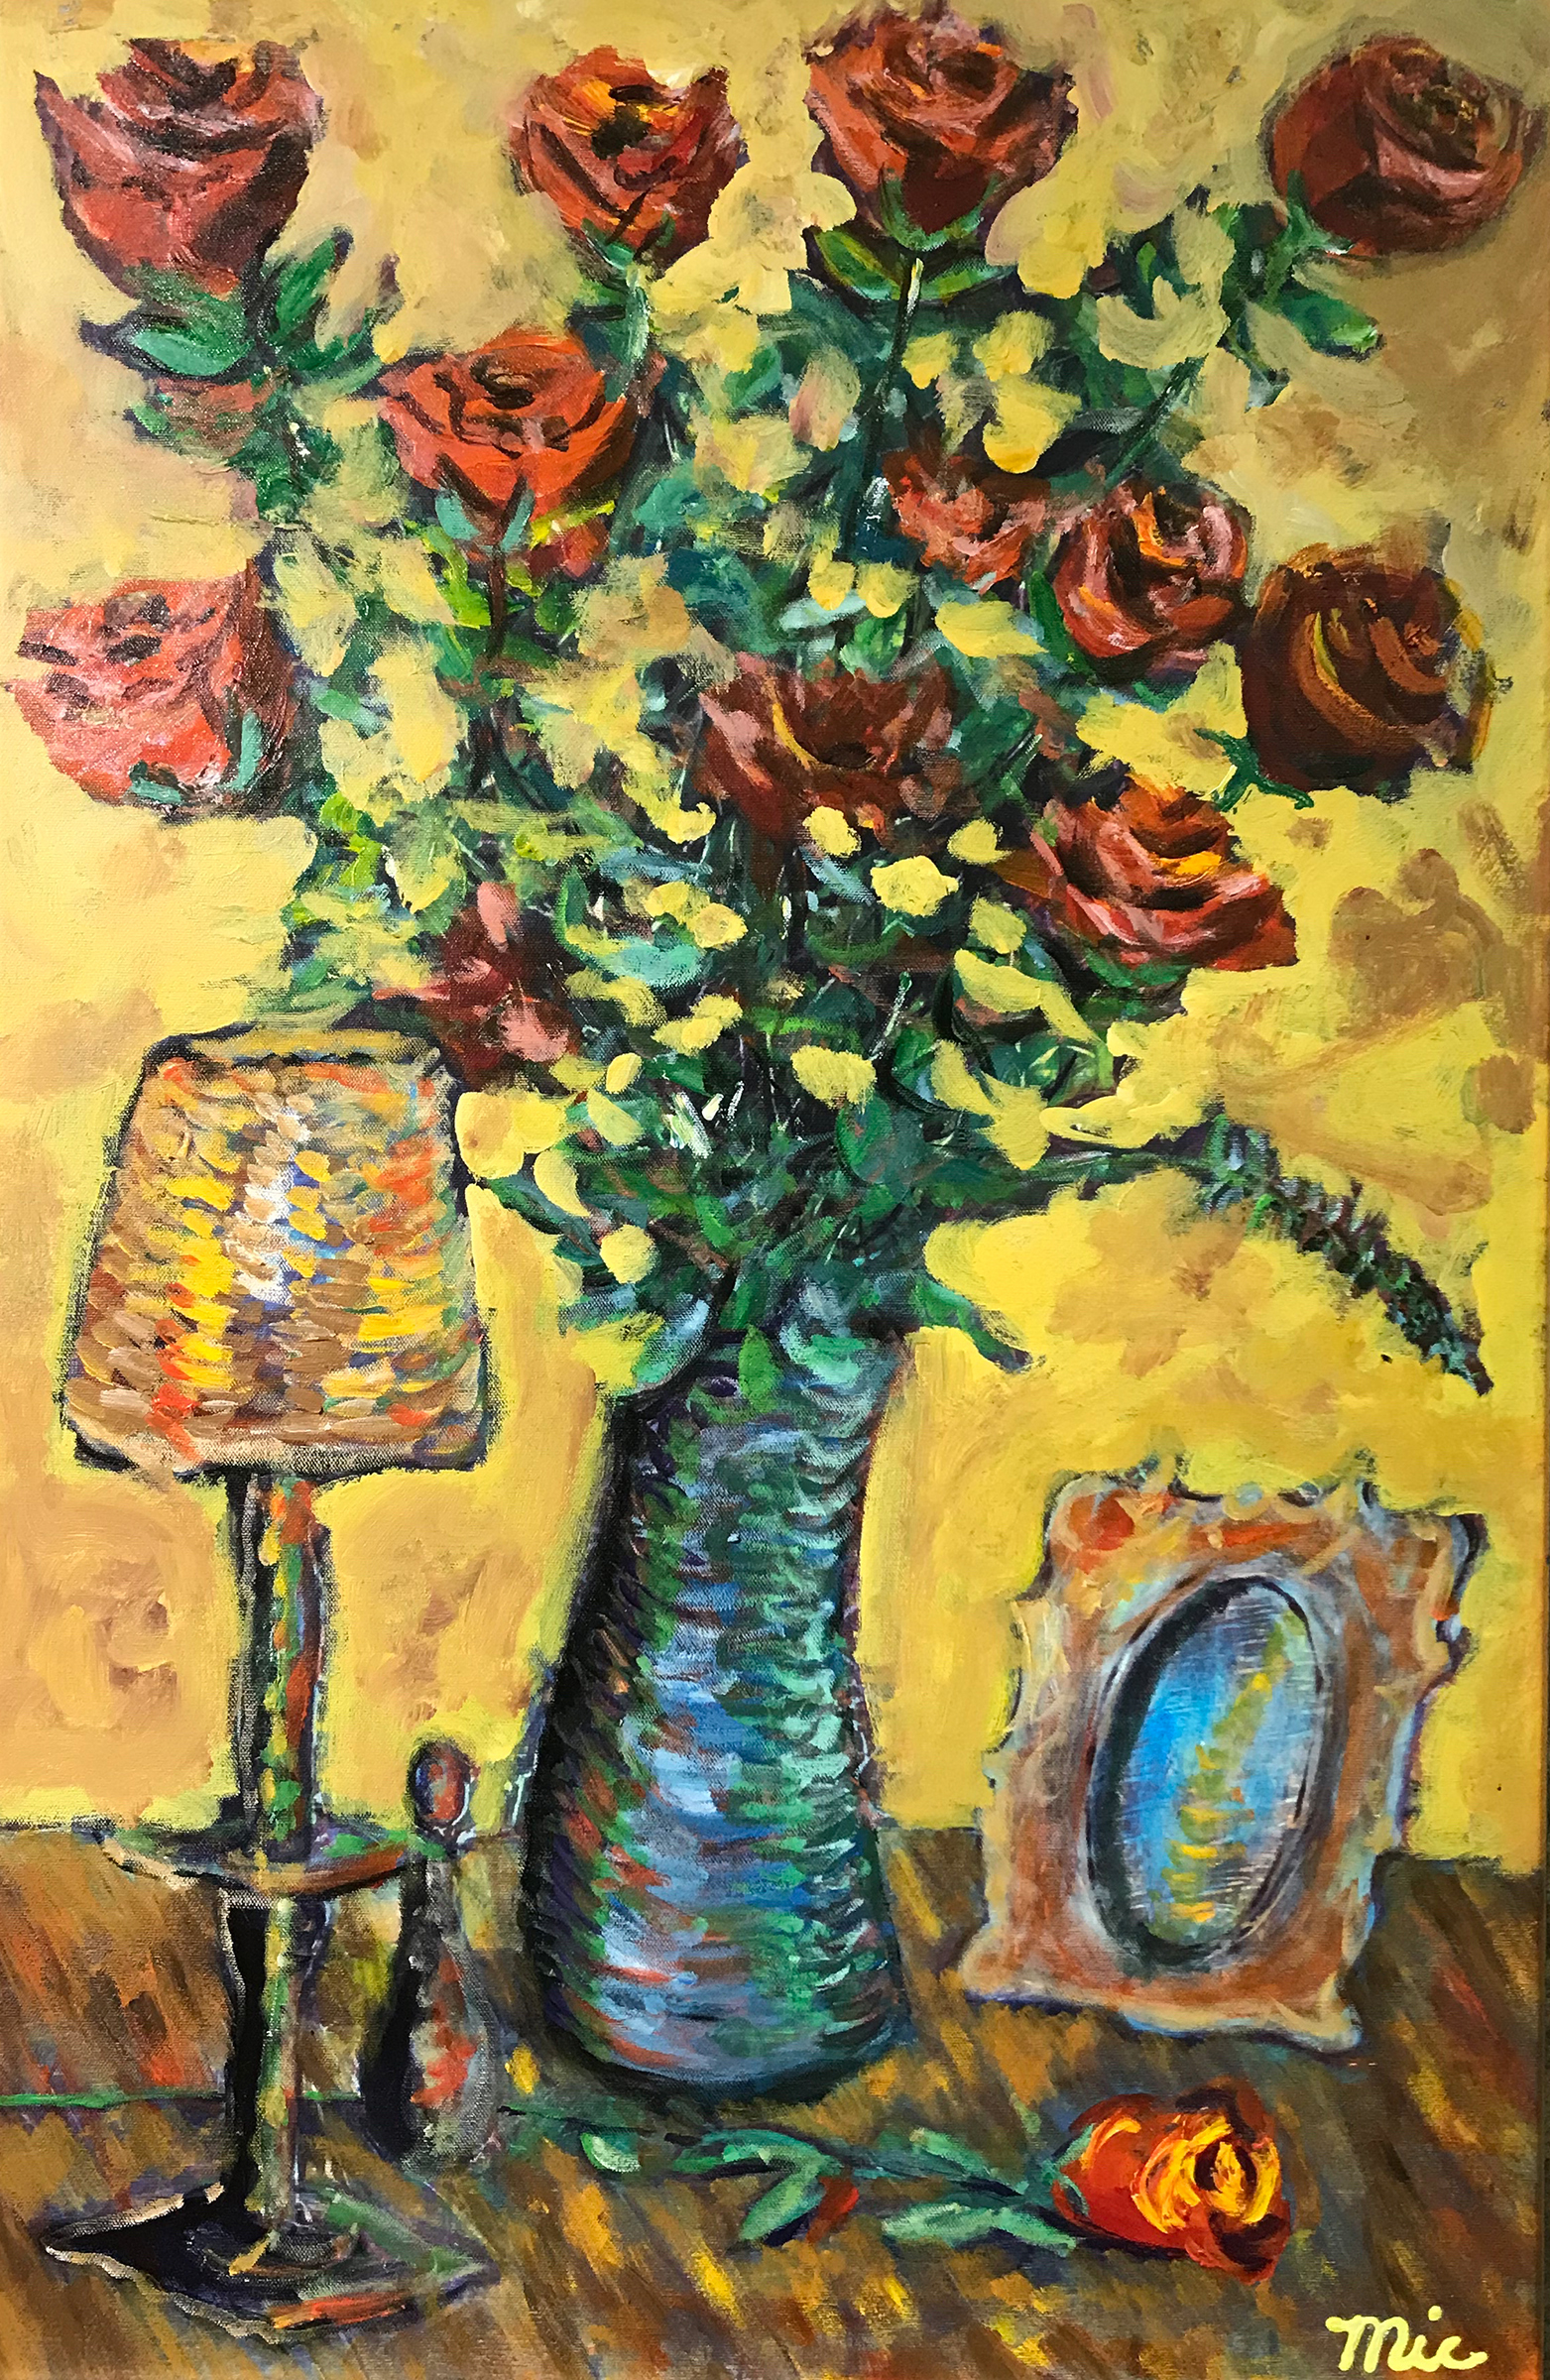 """Fallen Orange Rose"" - Acrylic on canvas Private collection Cascade Art GalleryGiclee Limited Edition and canvas prints are available. Please visit the prints gallery."